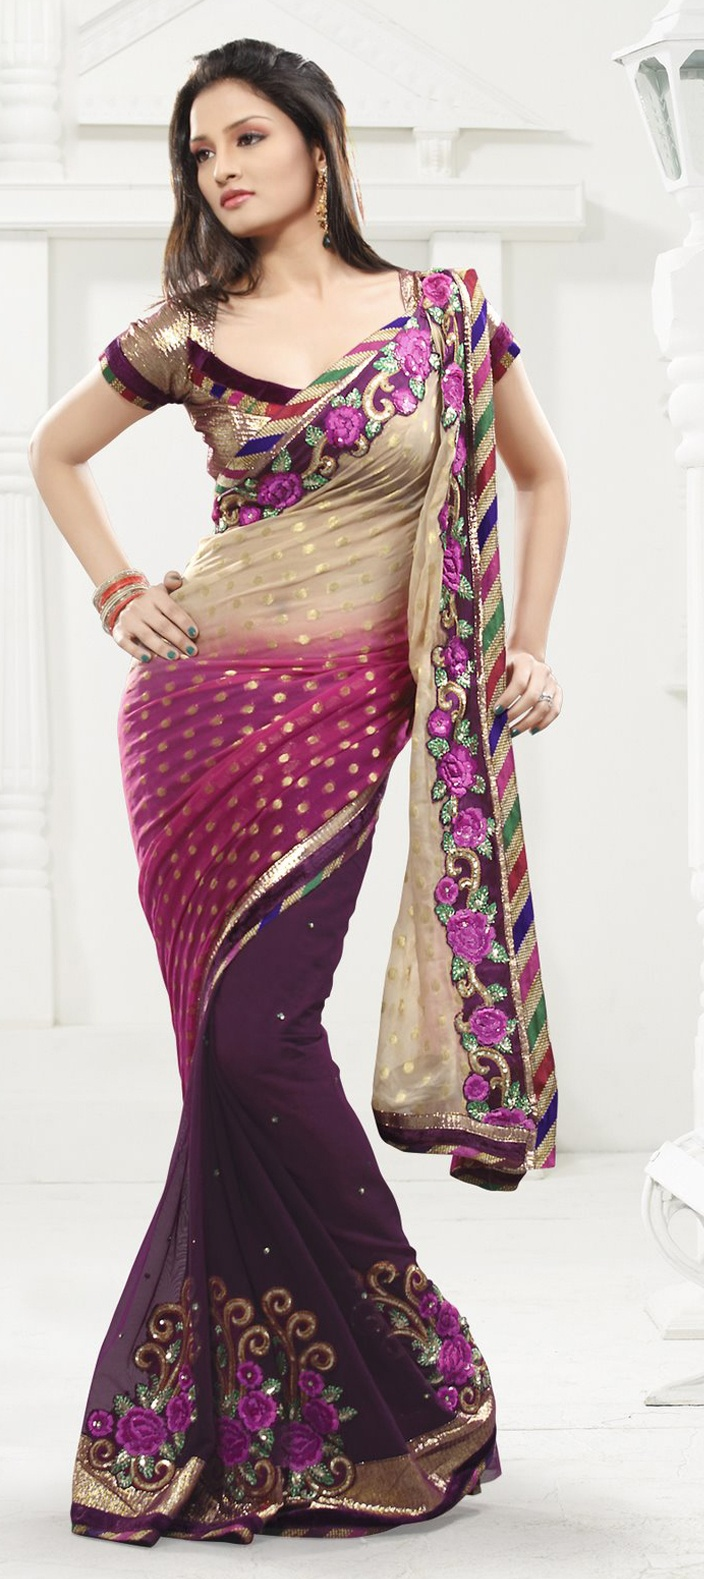 Indian Wedding Saree - exclusive online store for Indian dresses. You can find a vast variety of Indian and indo-western outfits designed specially to suit your needs and the exquisite collection of Indian designer wears ranging from day to day wearable kurtis to elegant Indian wedding sarees designed for rarest moments of life.